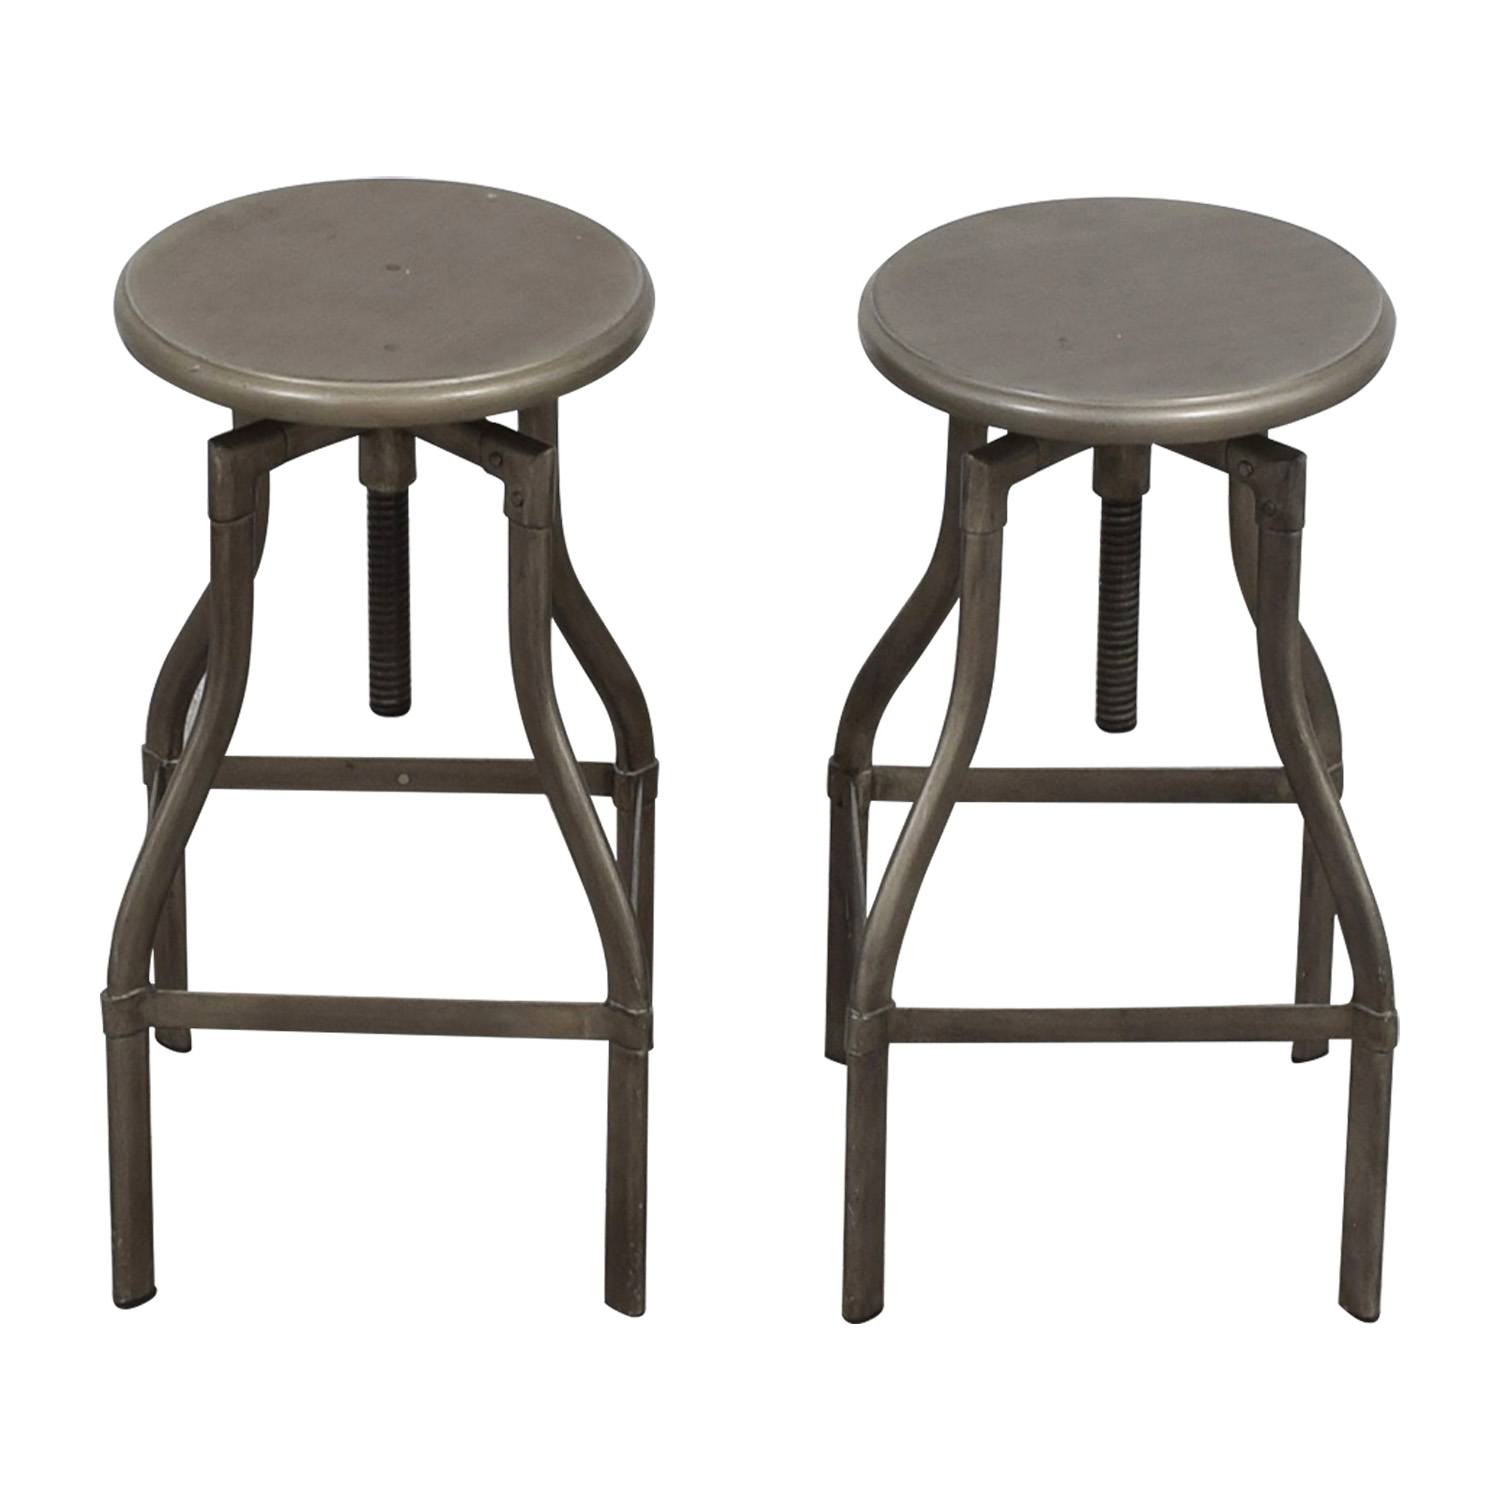 Crate & Barrel Crate & Barrel Turner Bar Stools